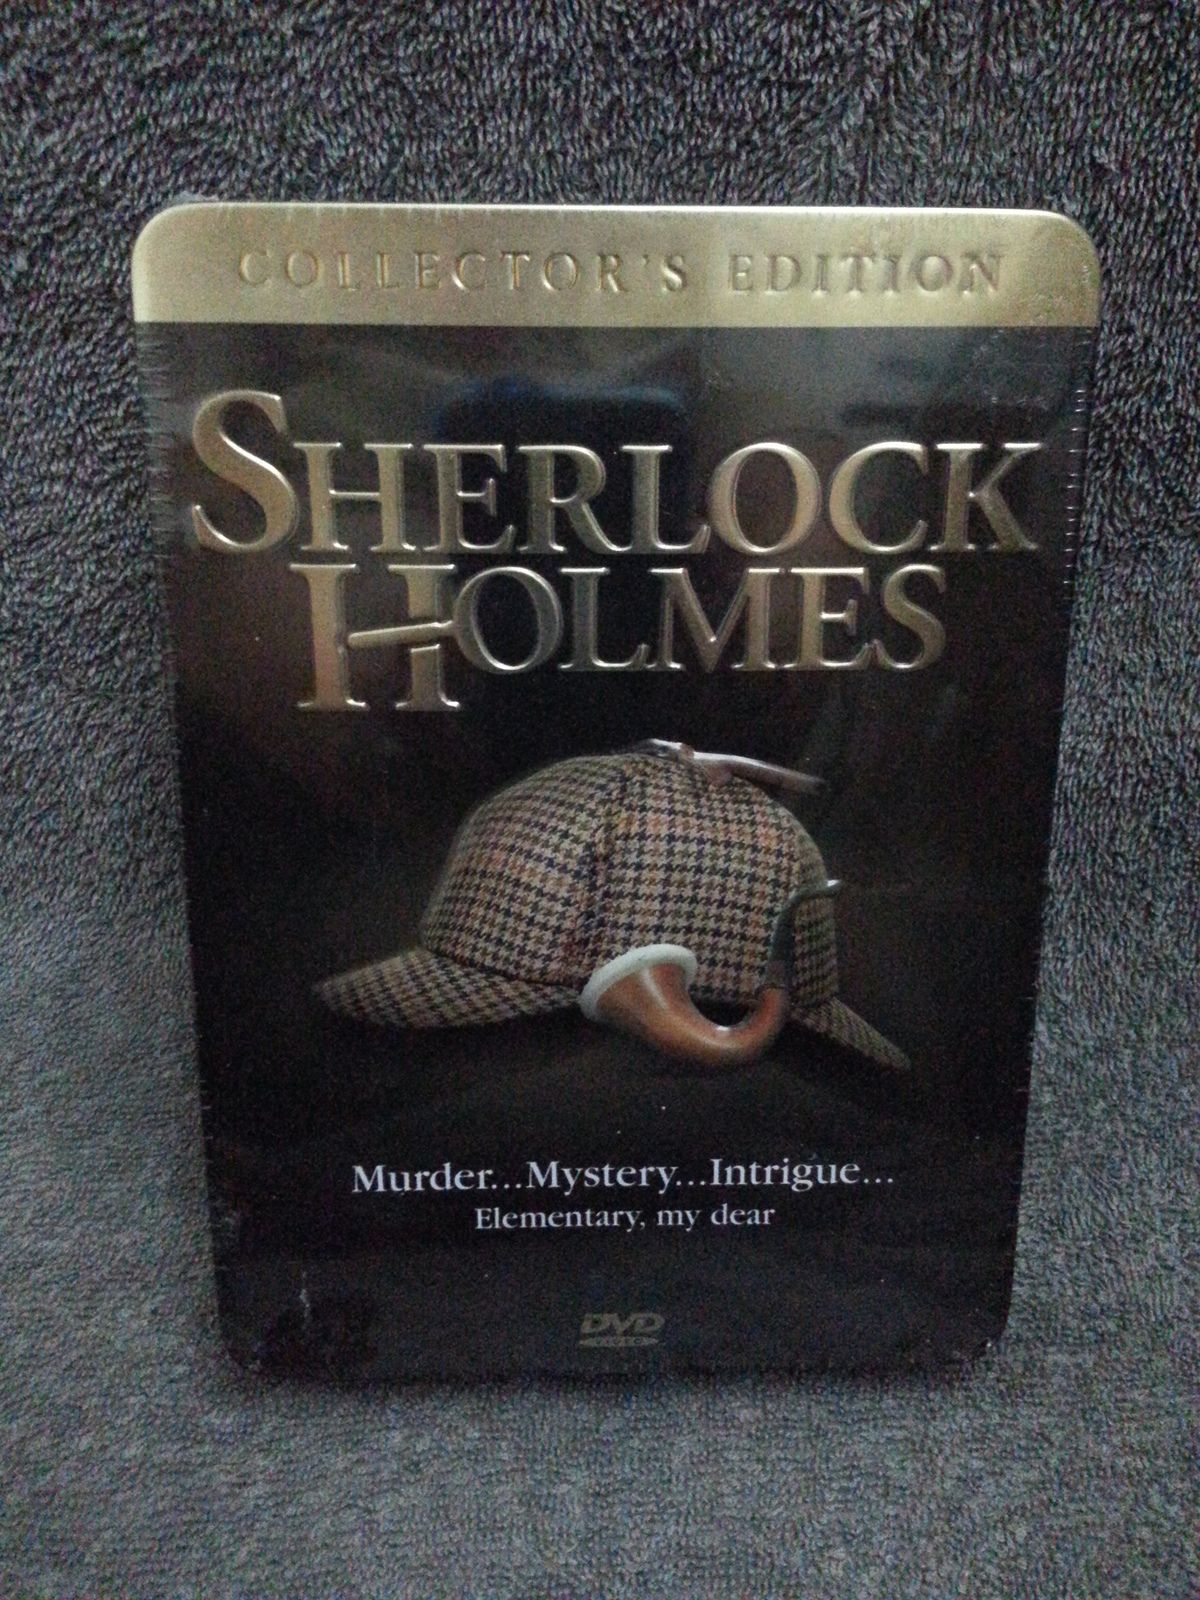 Sherlock Holmes collector's edition metal tin set